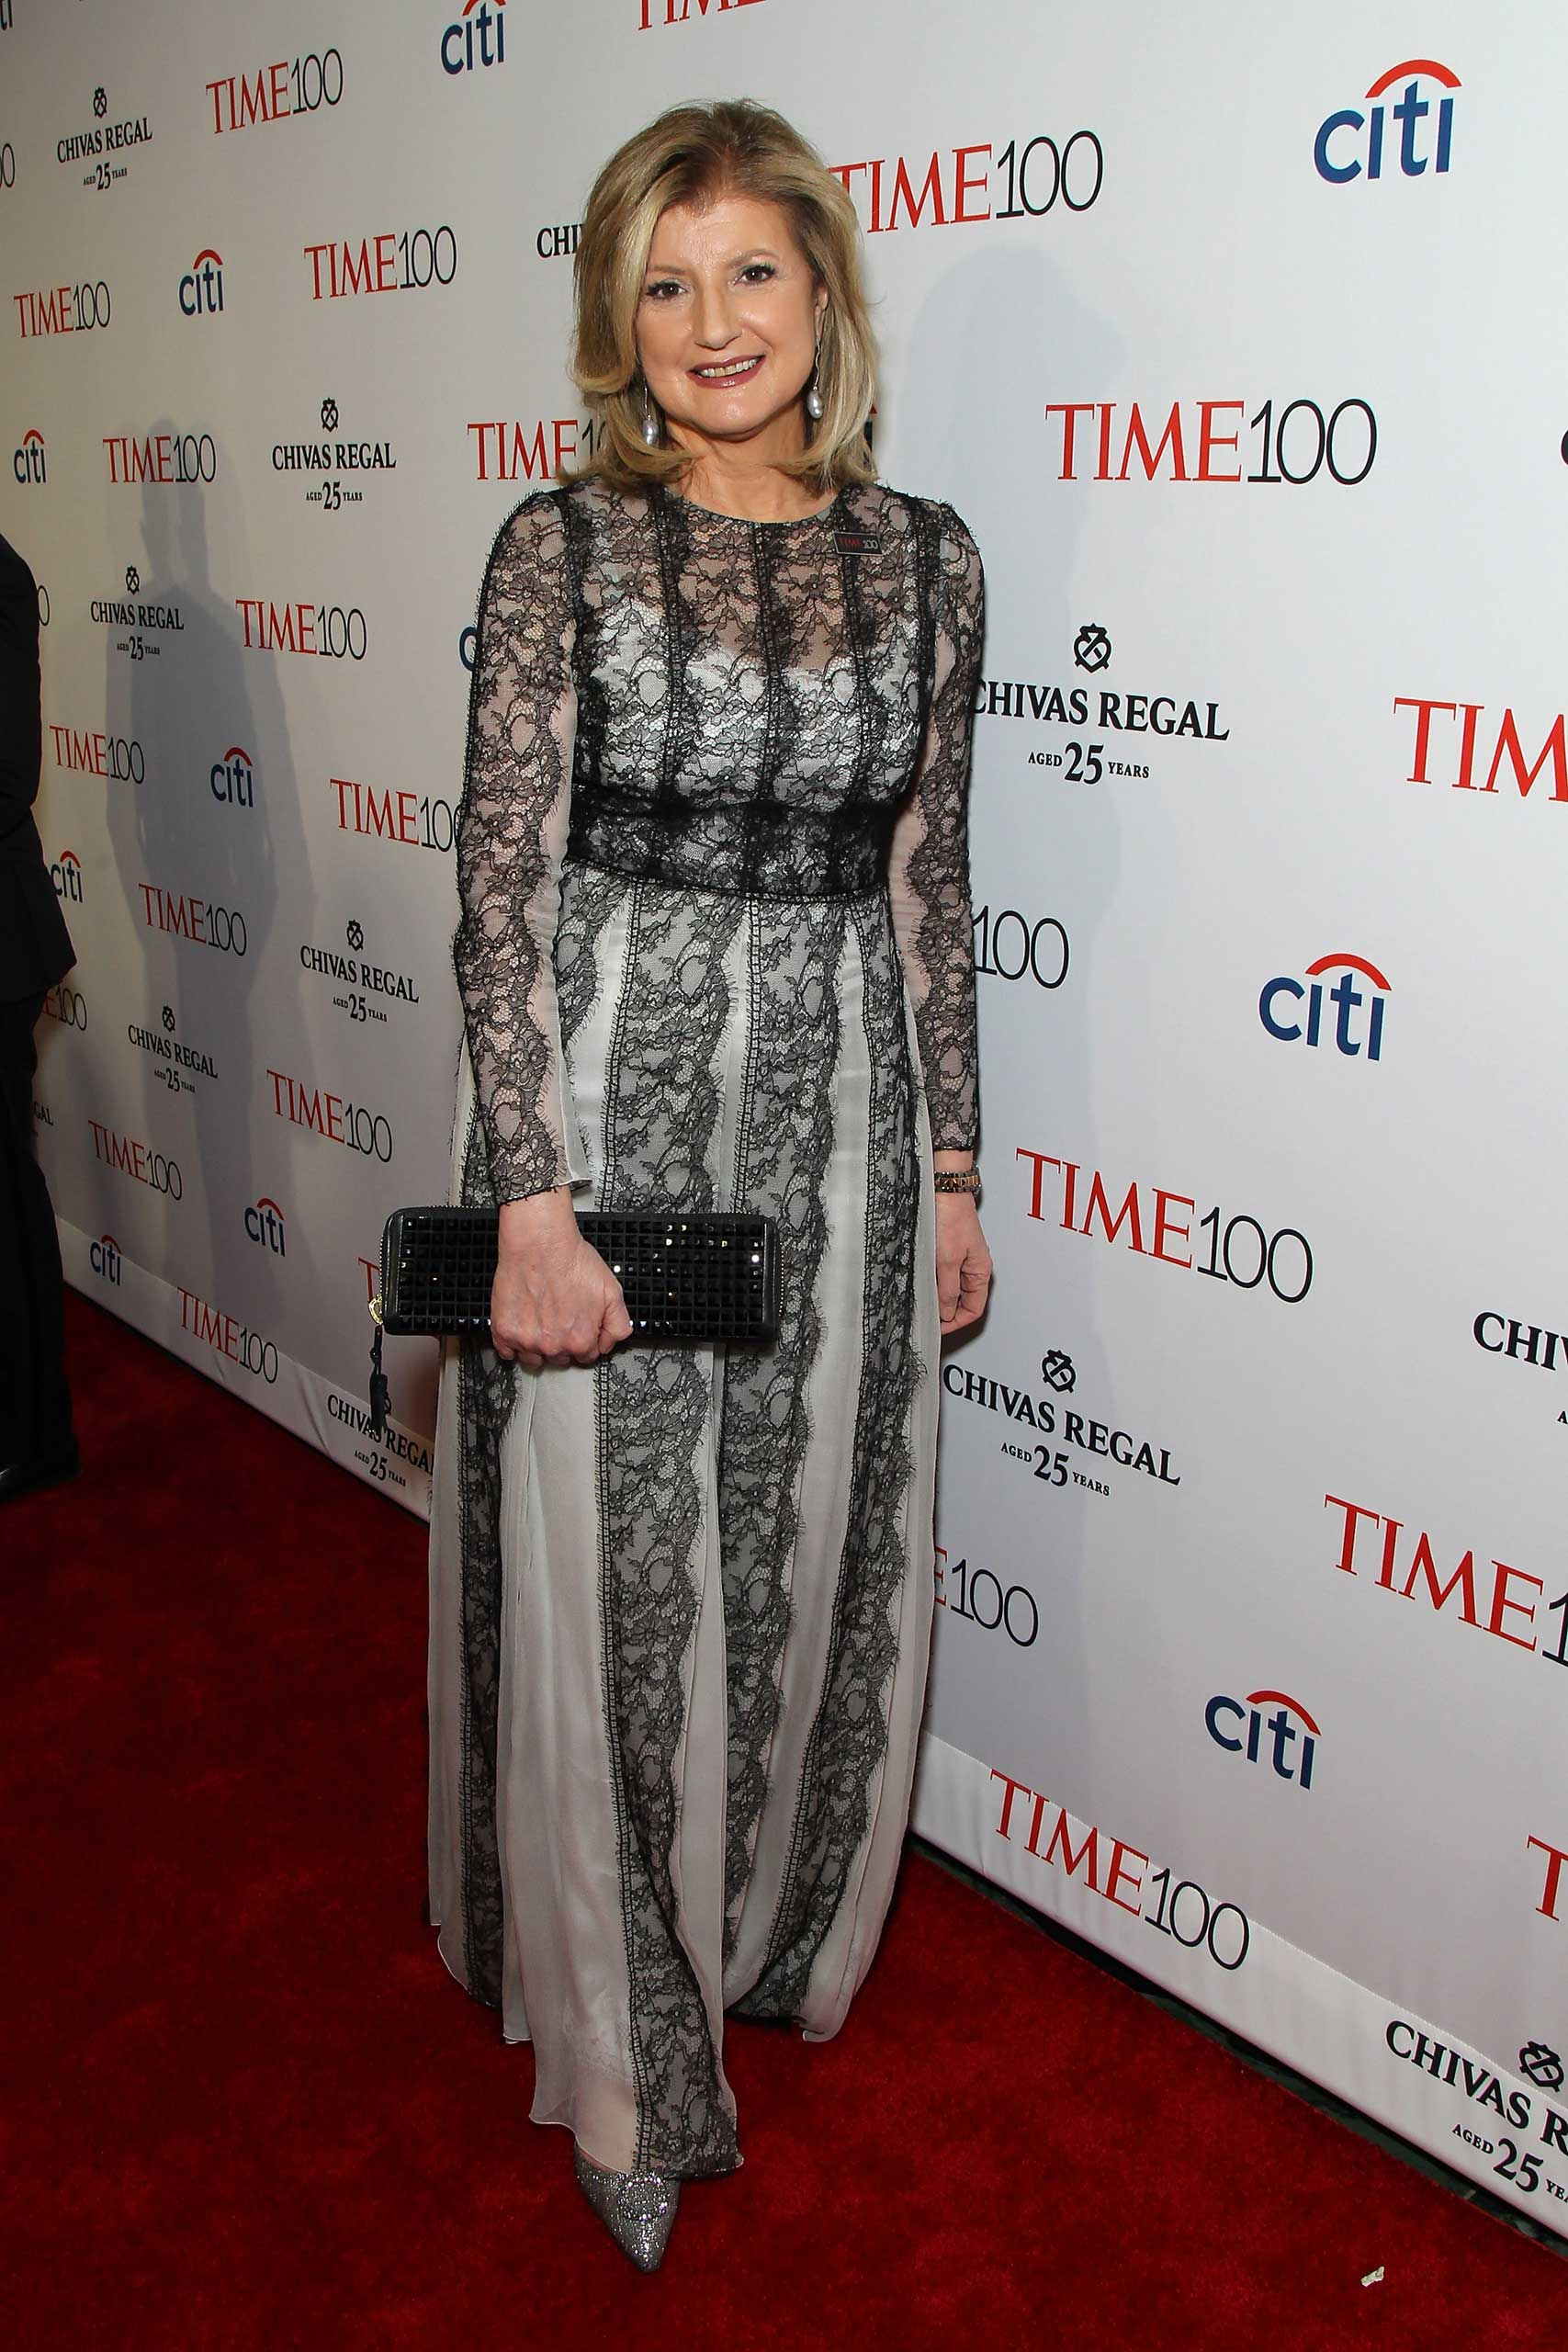 Arianna Huffington attends the TIME 100 Gala at Jazz at Lincoln Center in New York City on April 21, 2015.